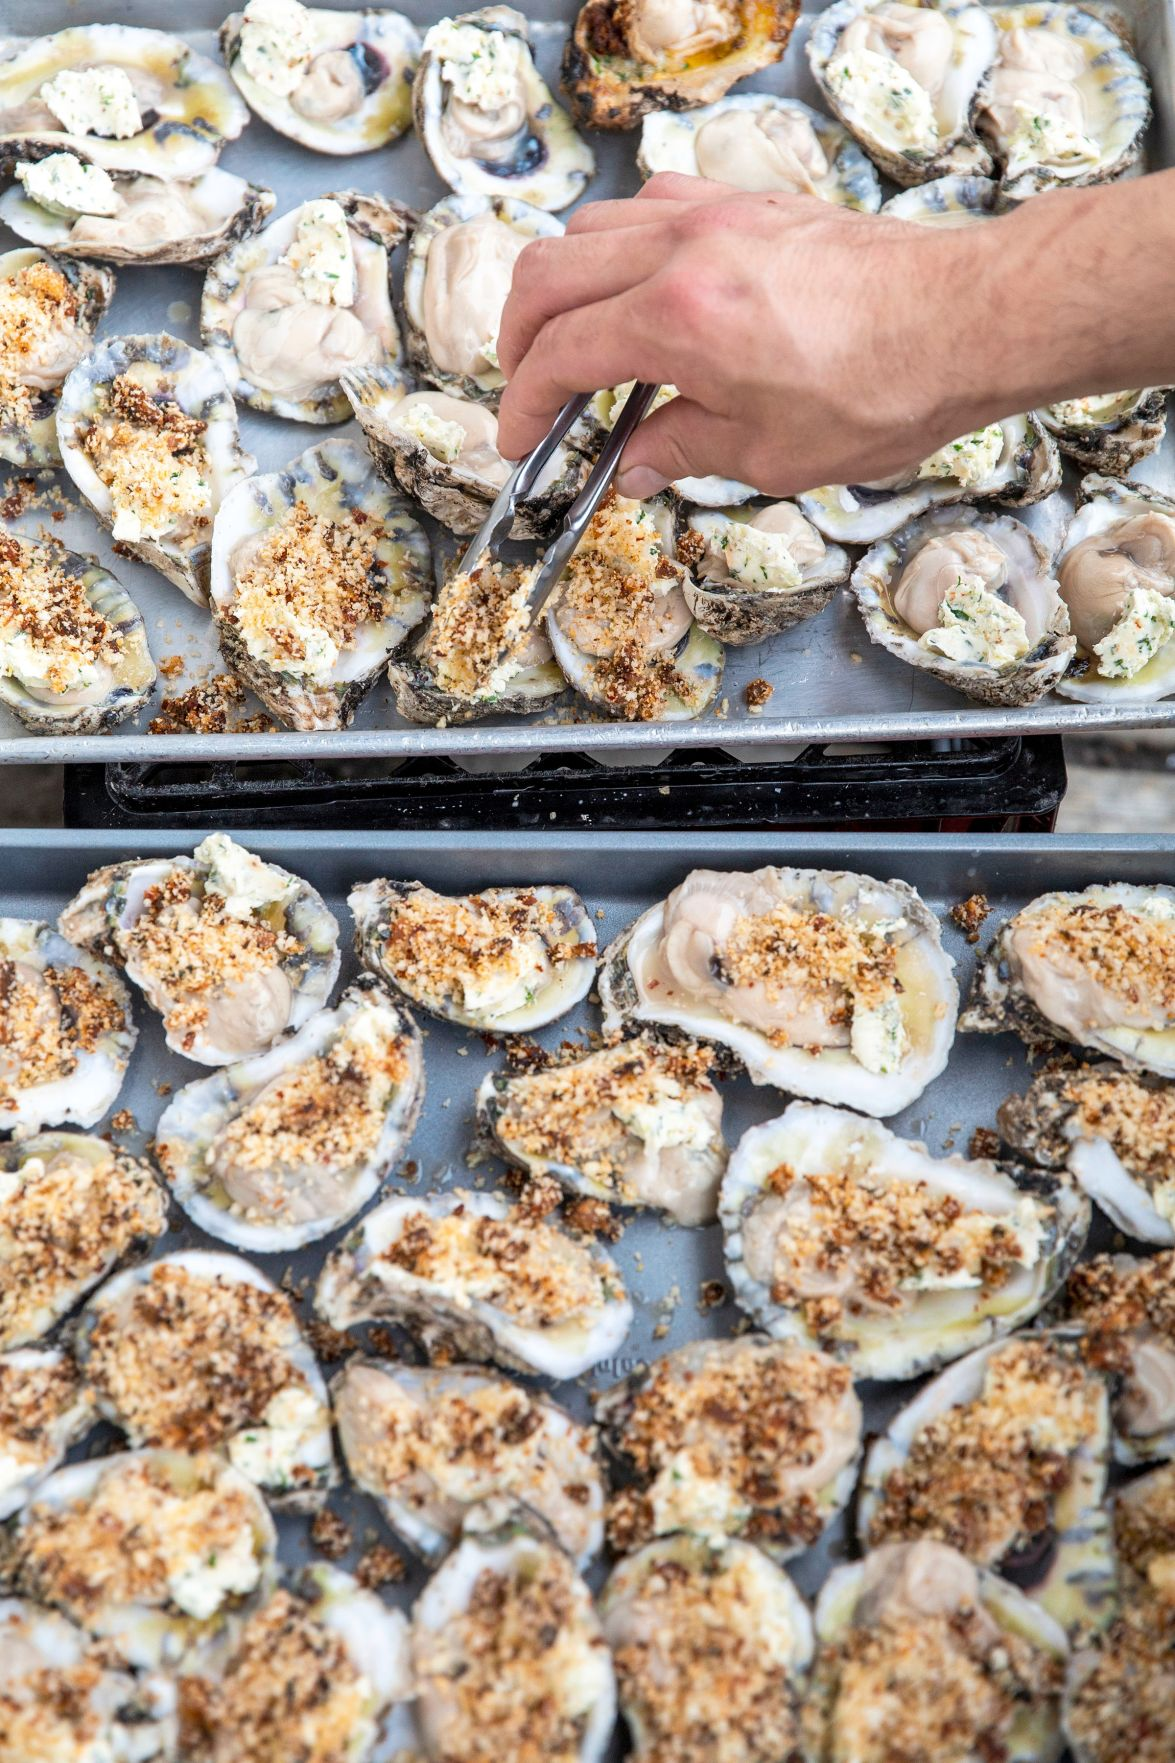 052919_MNS_Atl_Food_Wine_003 oysters